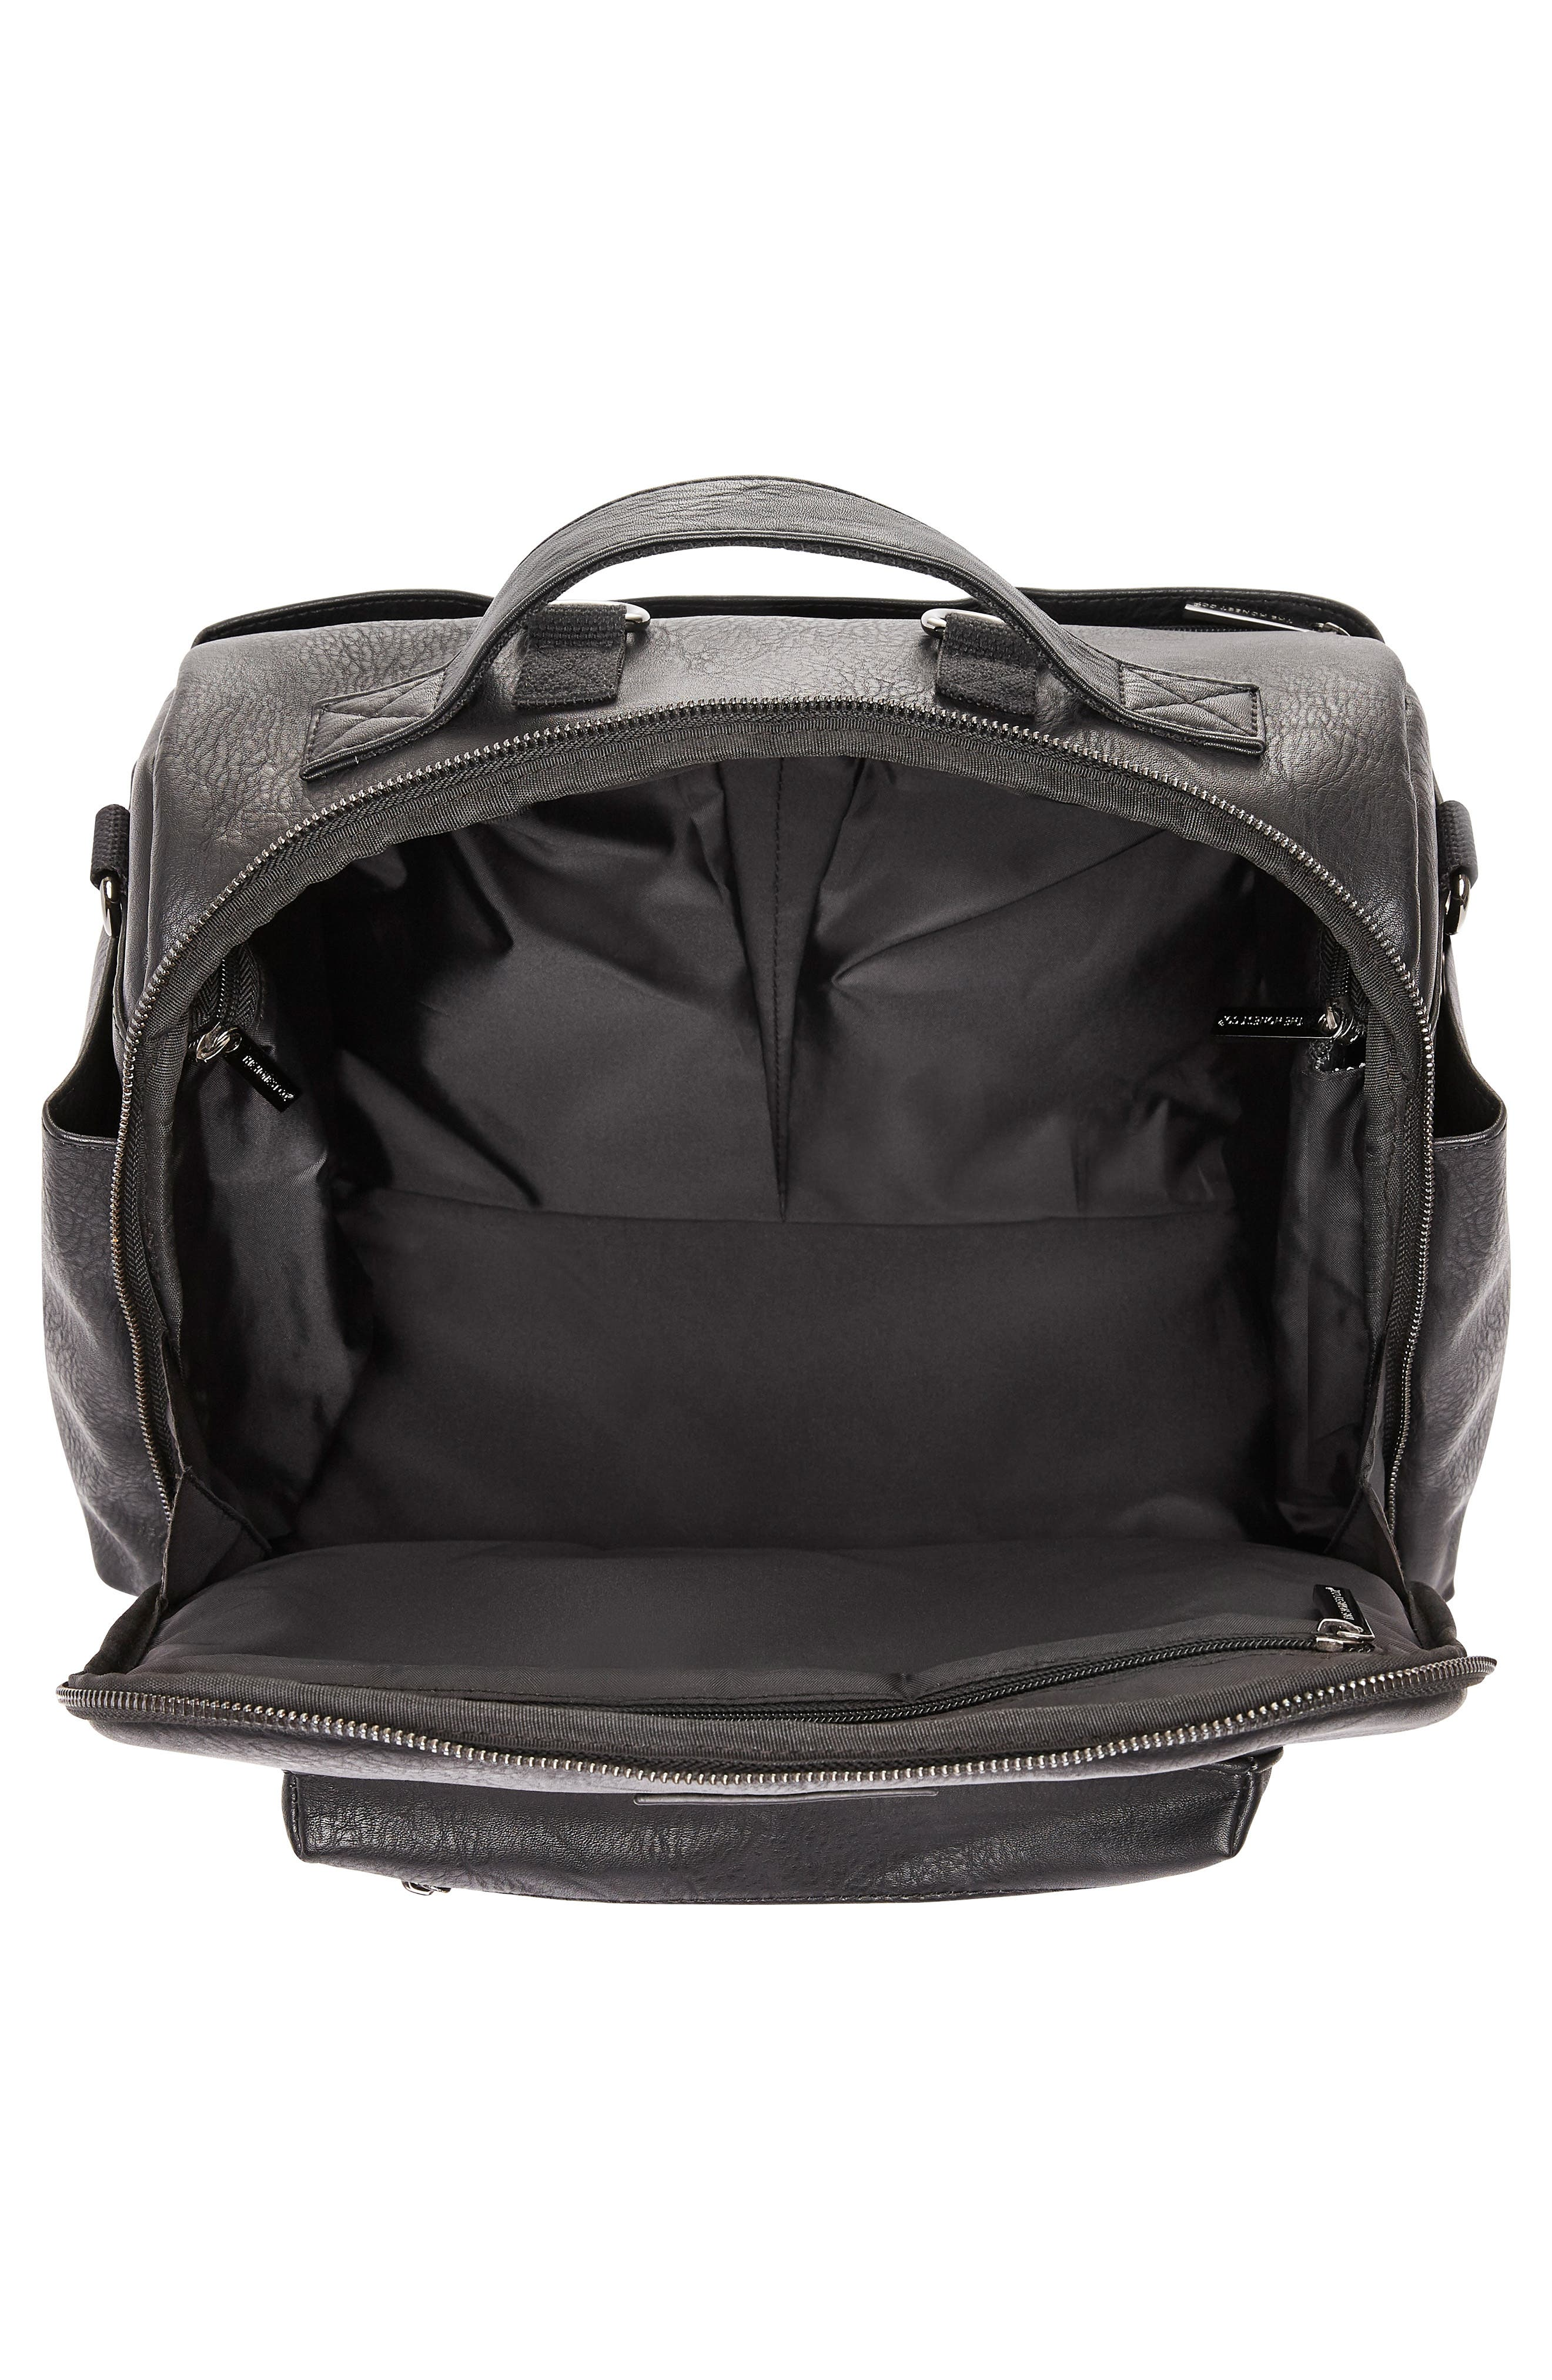 Cross Country Faux Leather Diaper Bag,                             Alternate thumbnail 3, color,                             001